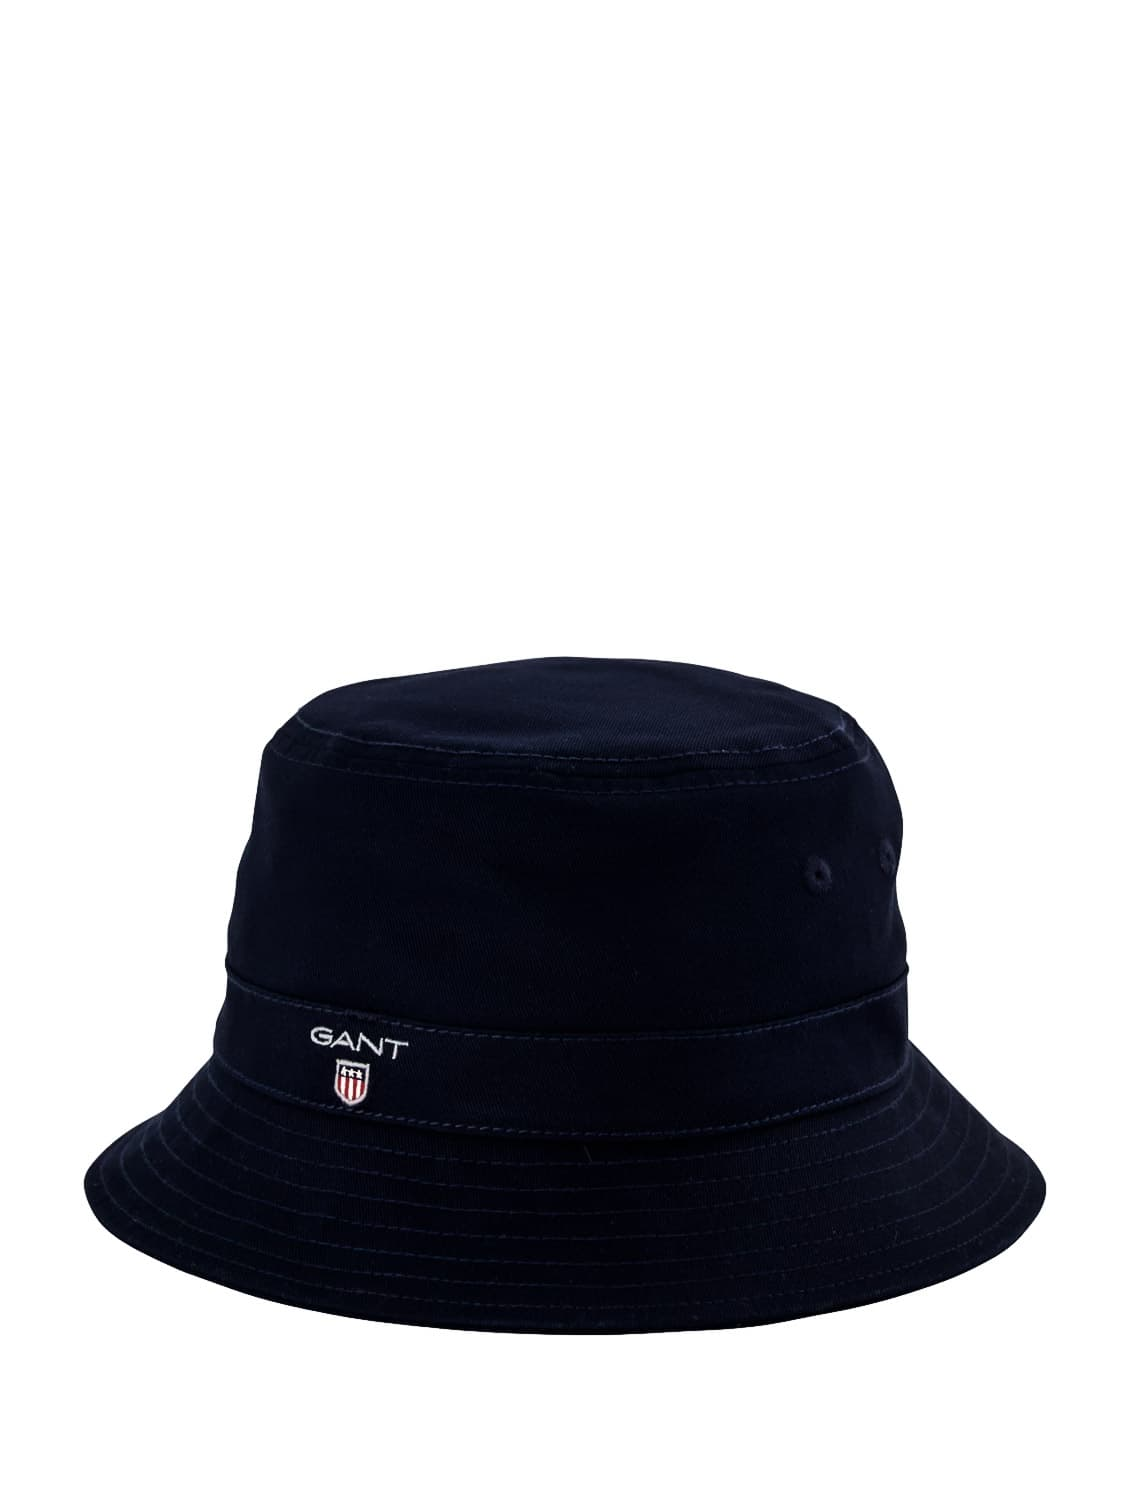 Gant Hats KIDS HAT D1. SUN HAT FOR FOR BOYS AND FOR GIRLS